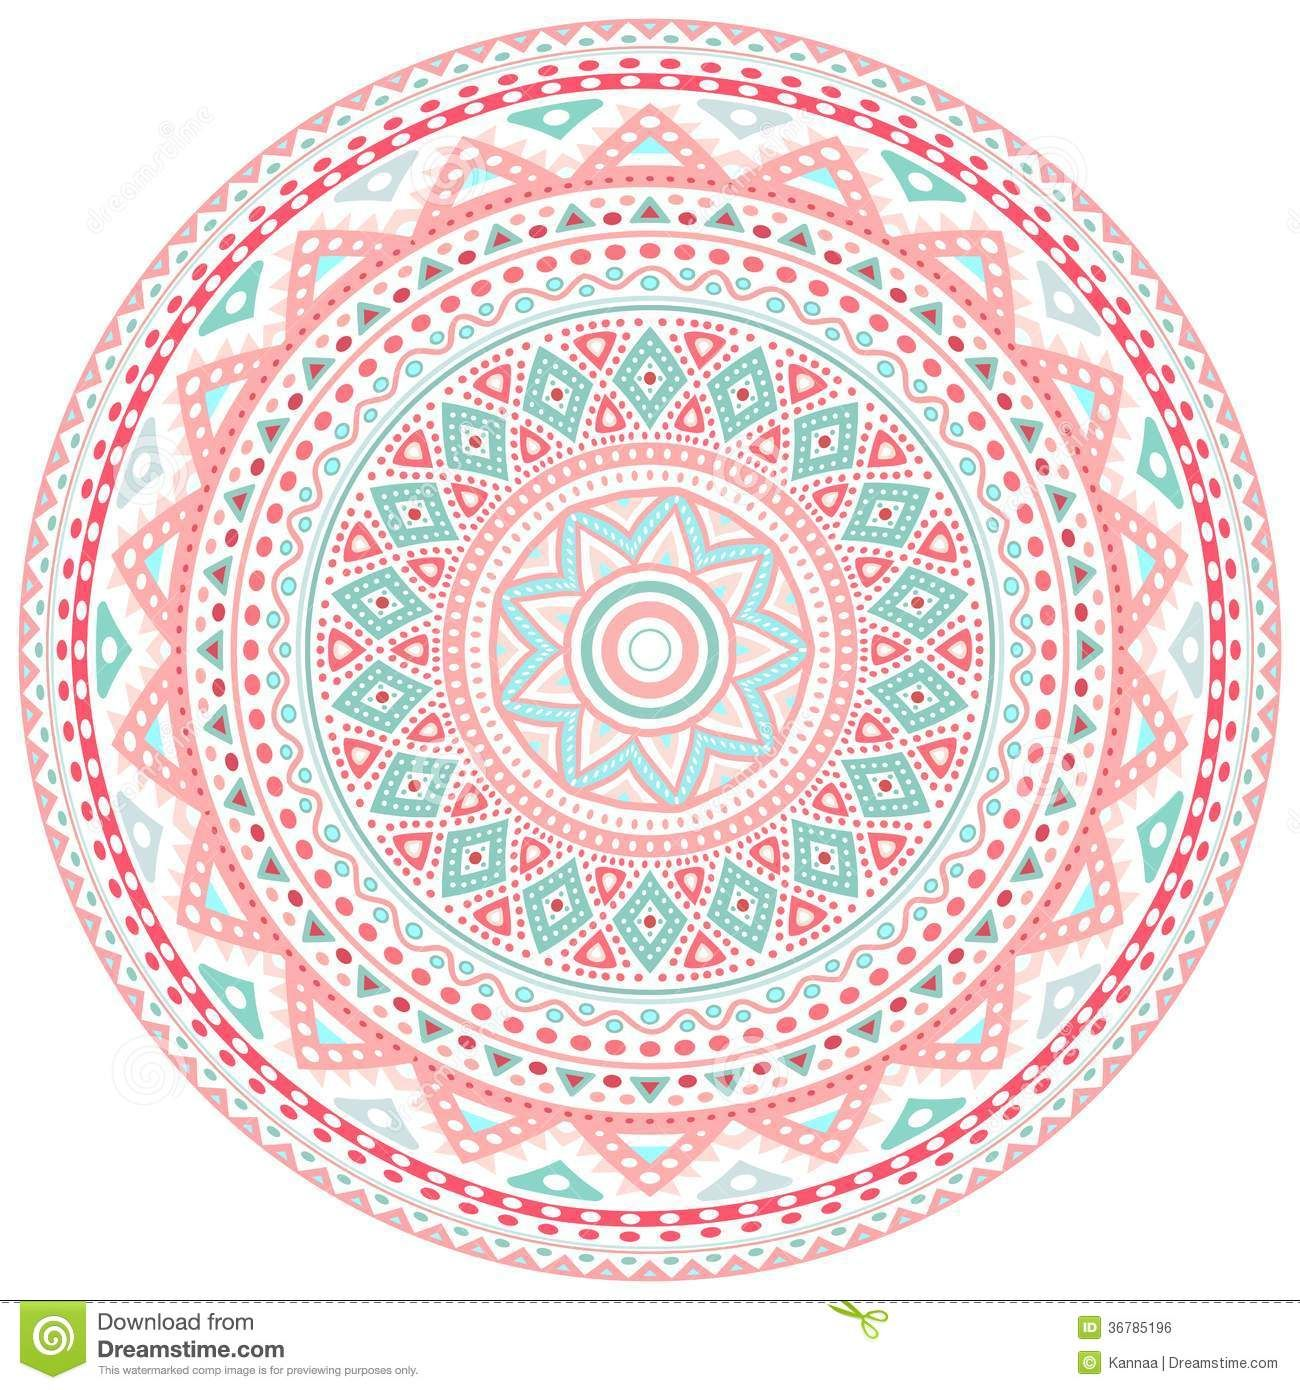 circle of life mandala - Google Search